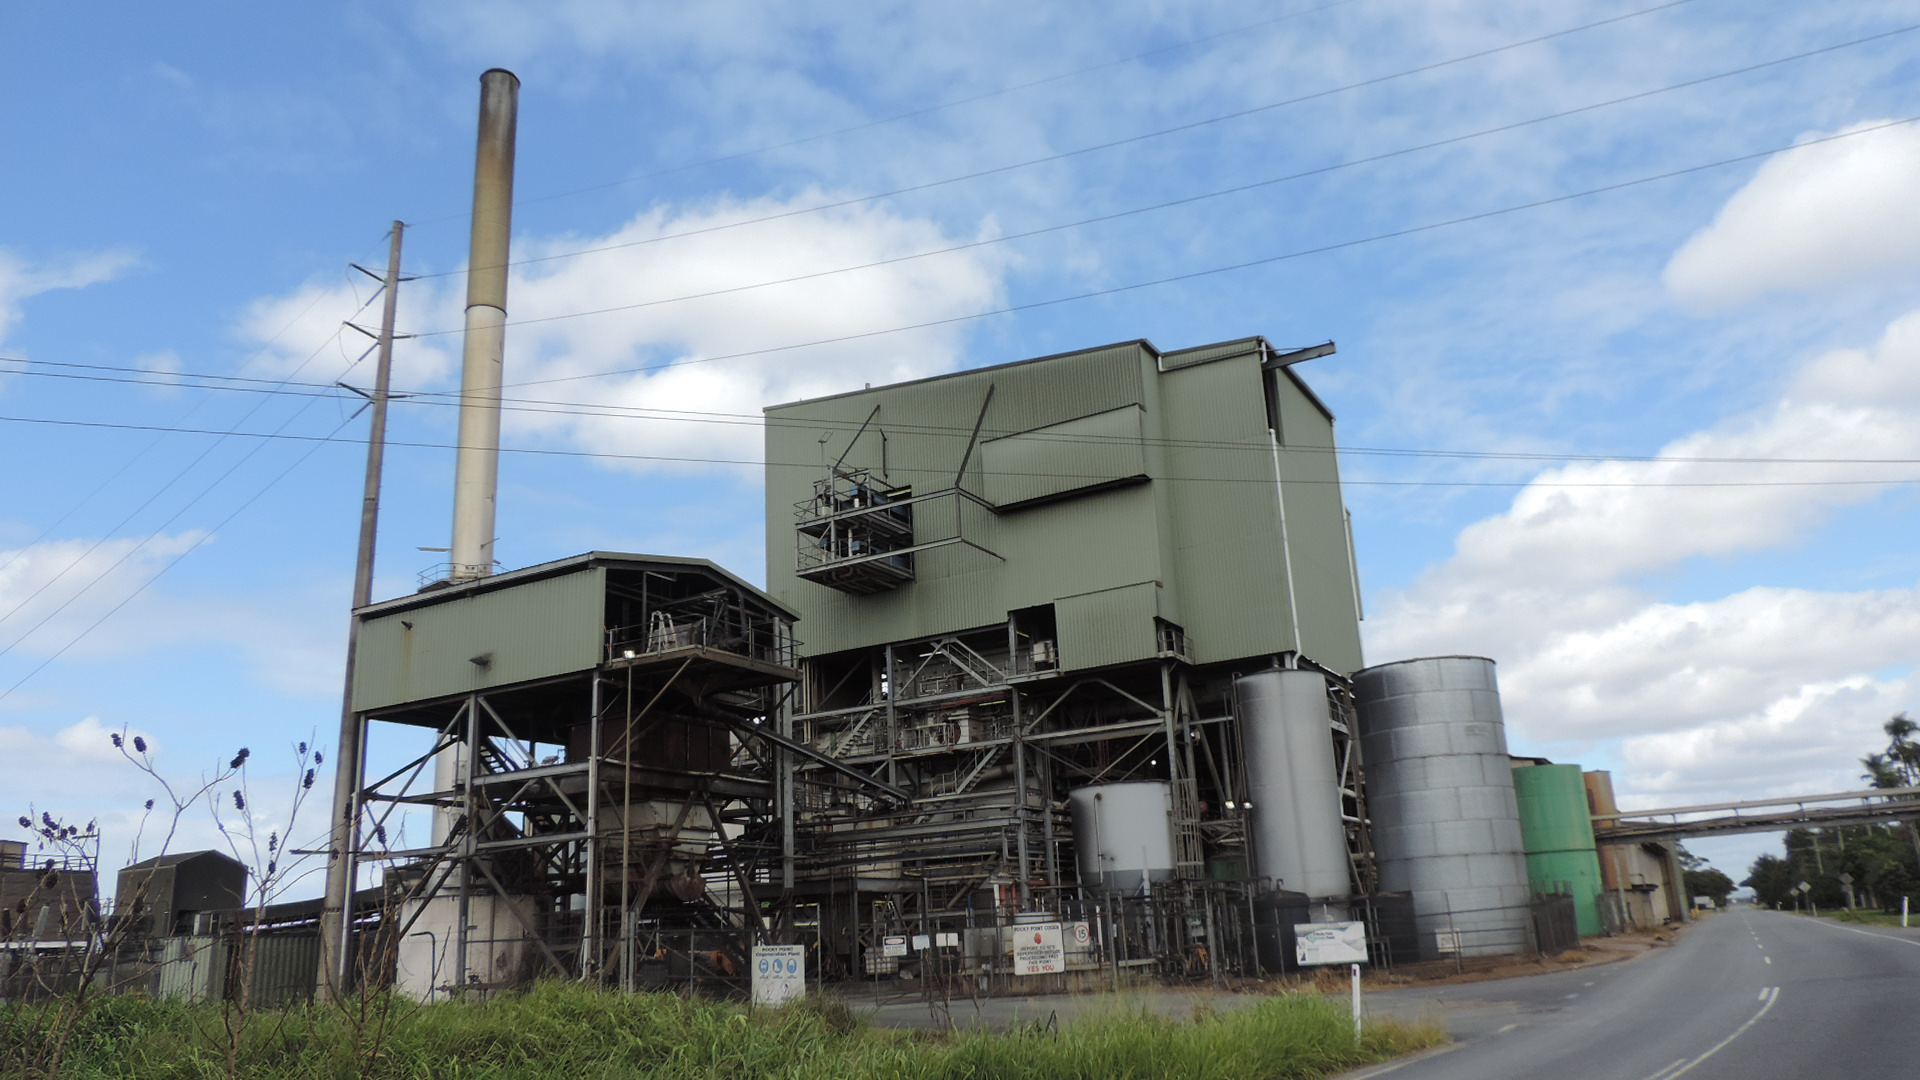 File:Rocky Point Sugar Mill, Woongoolba and Steiglitz, 2014.JPG